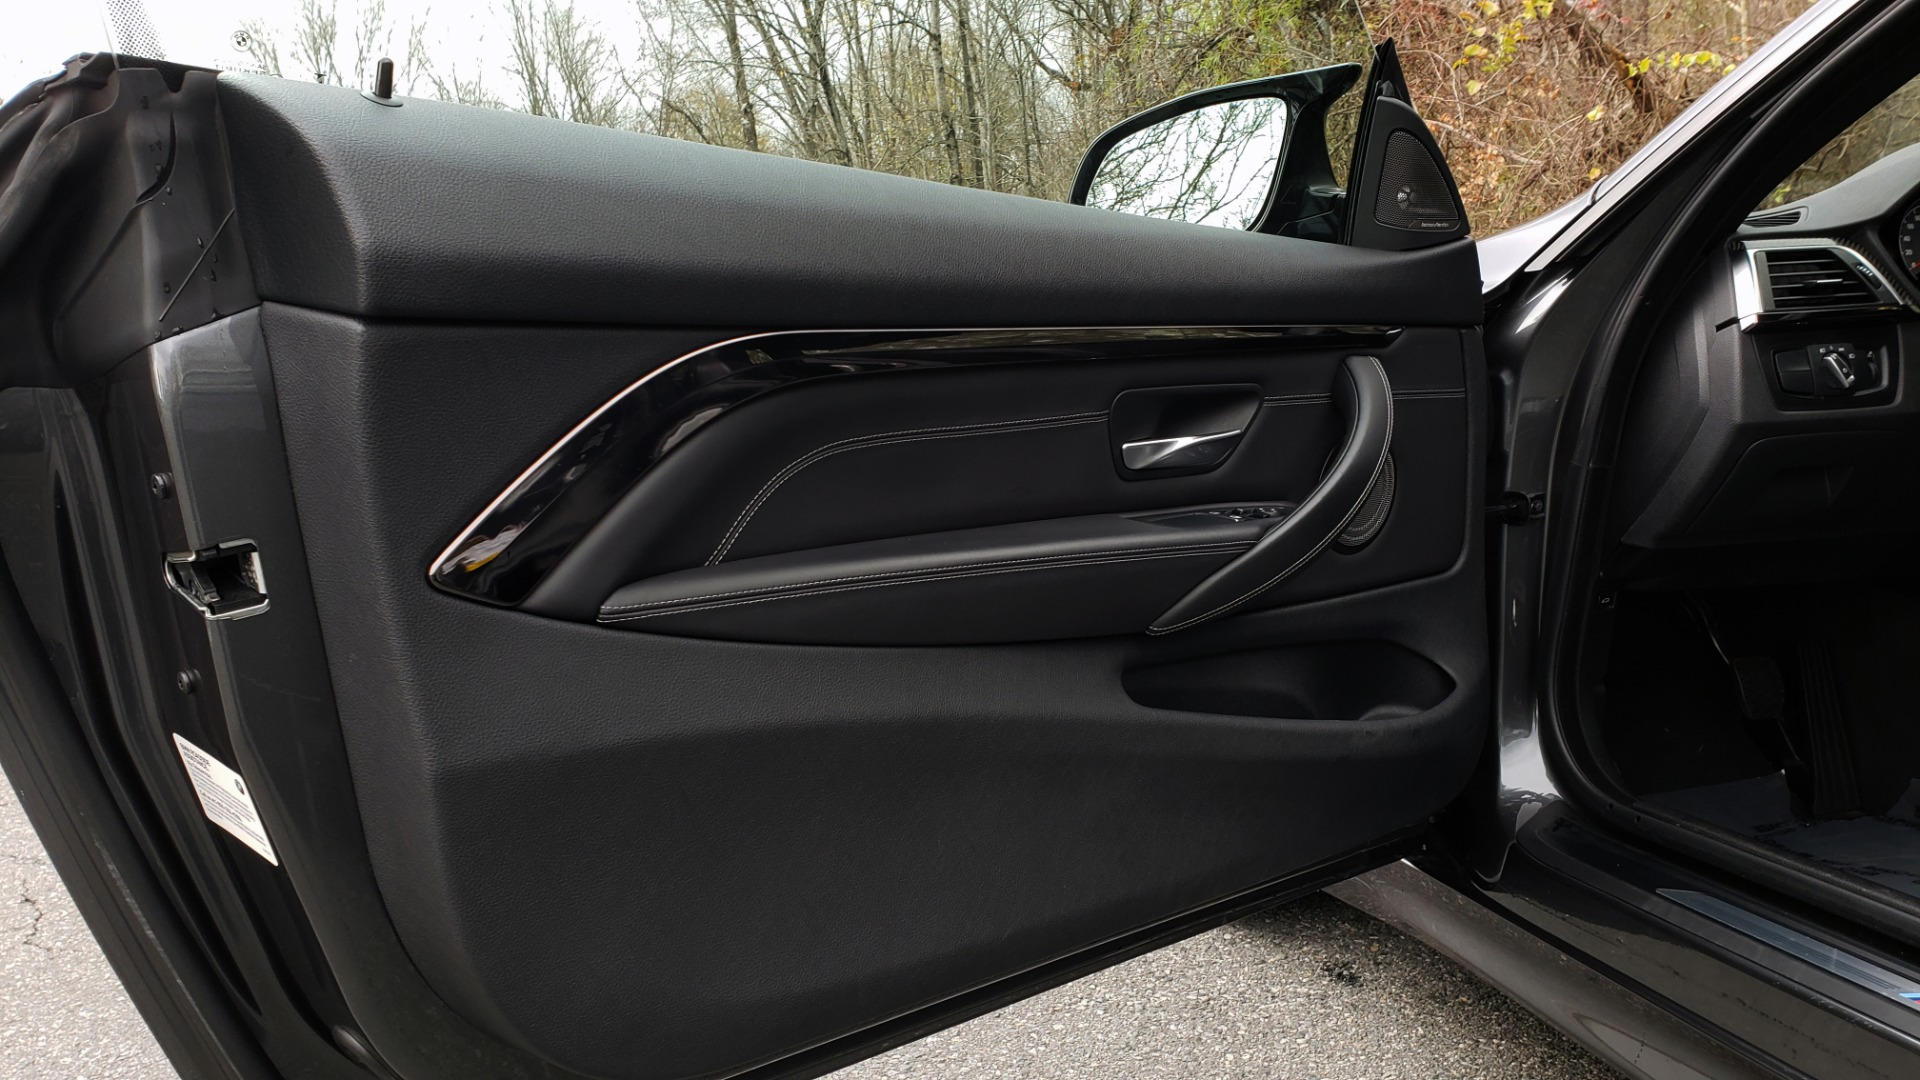 Used 2018 BMW M4 M-COMP / EXEC PKG / 7-SPD DBL CLUTCH / NAV / REARVIEW for sale Sold at Formula Imports in Charlotte NC 28227 29